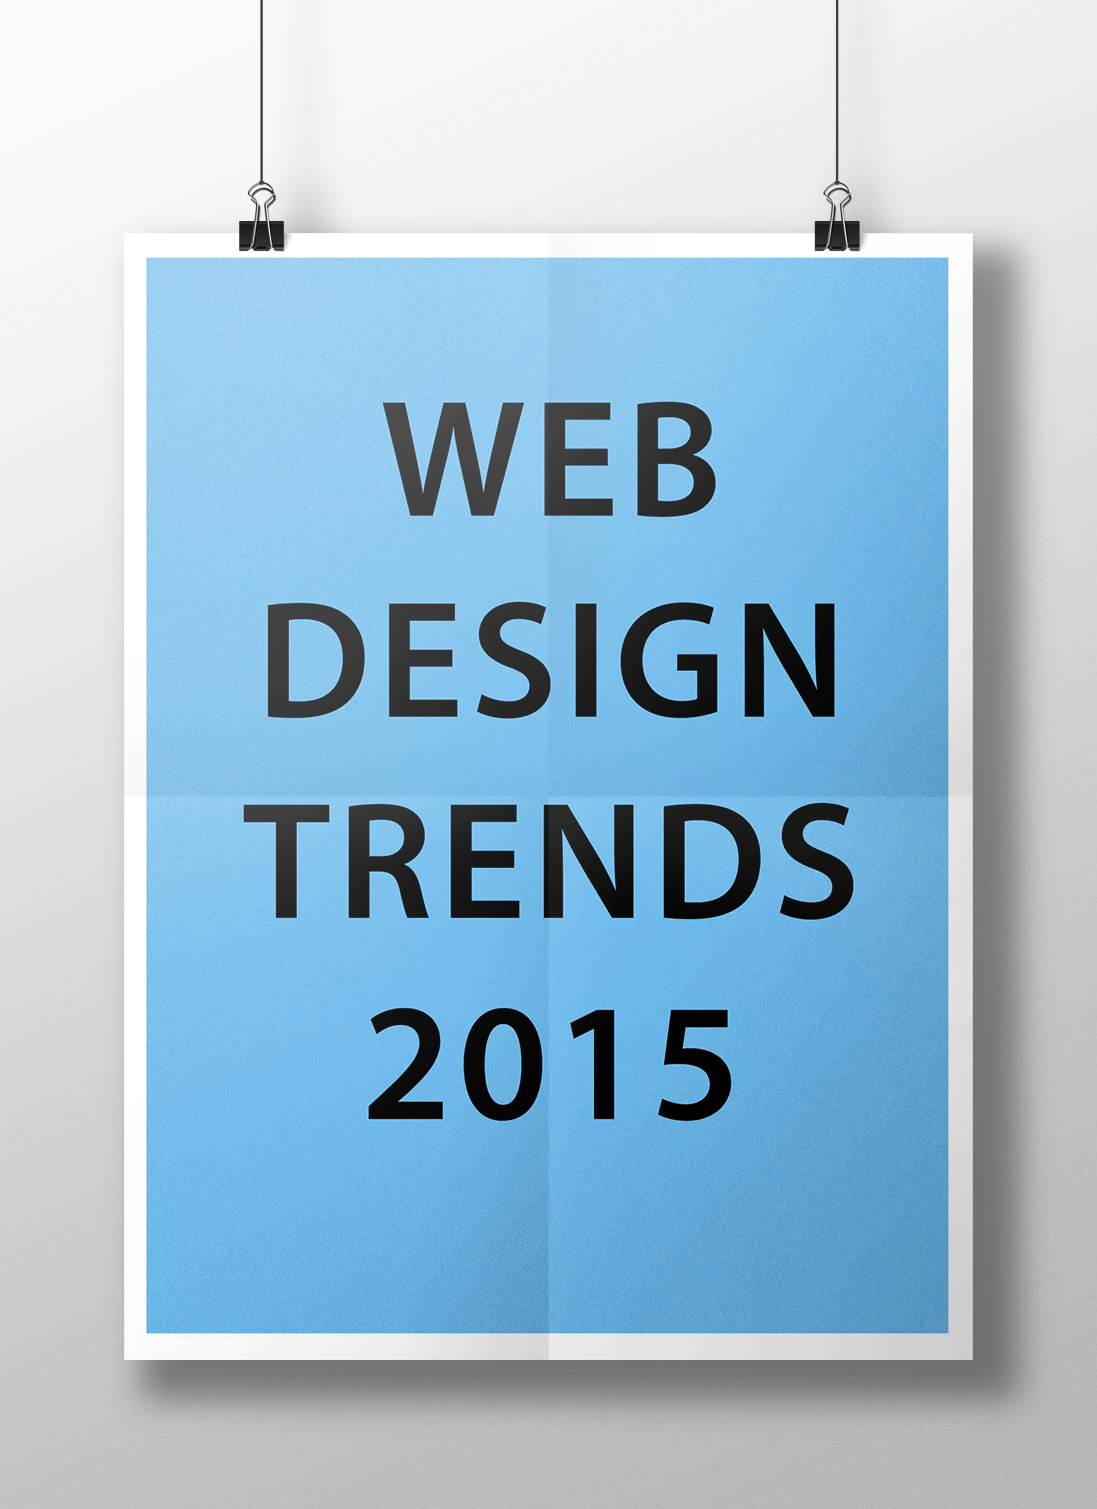 Poster design trends 2015 - 2015_web_design_trends